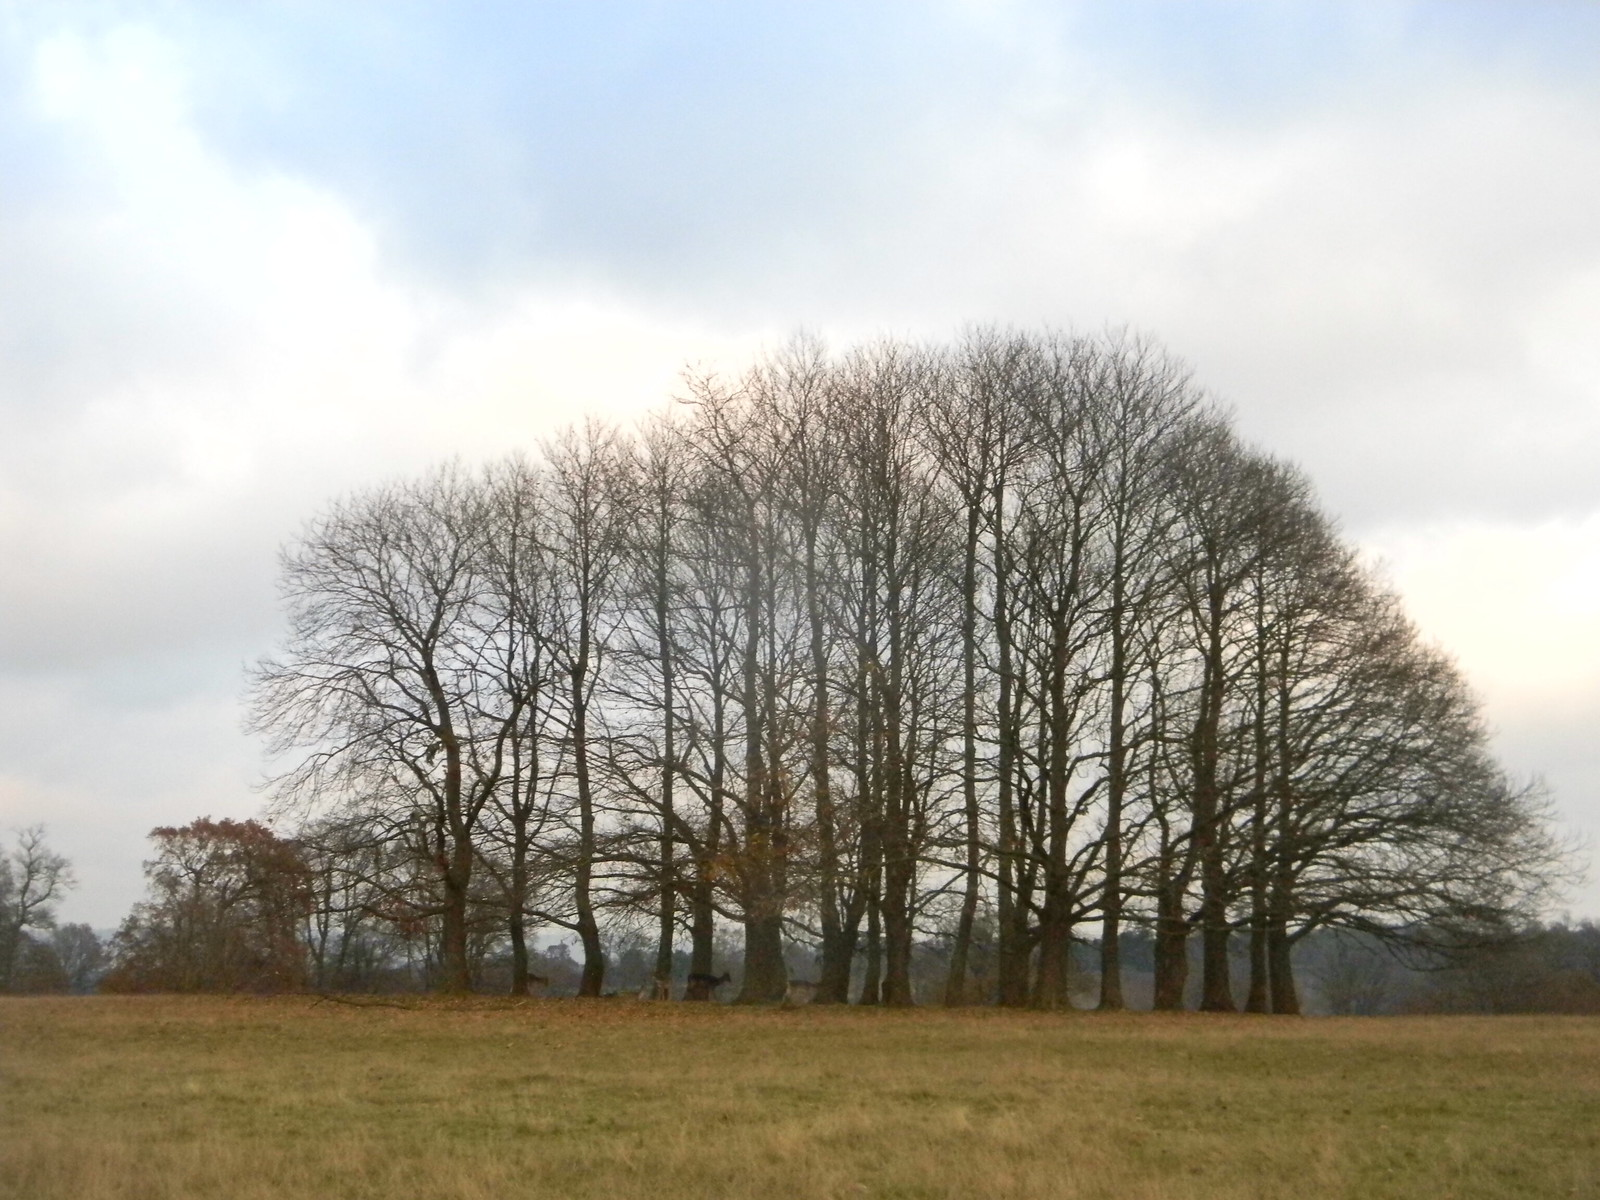 Herd and Copse Leigh to Sevenoaks Knole Park